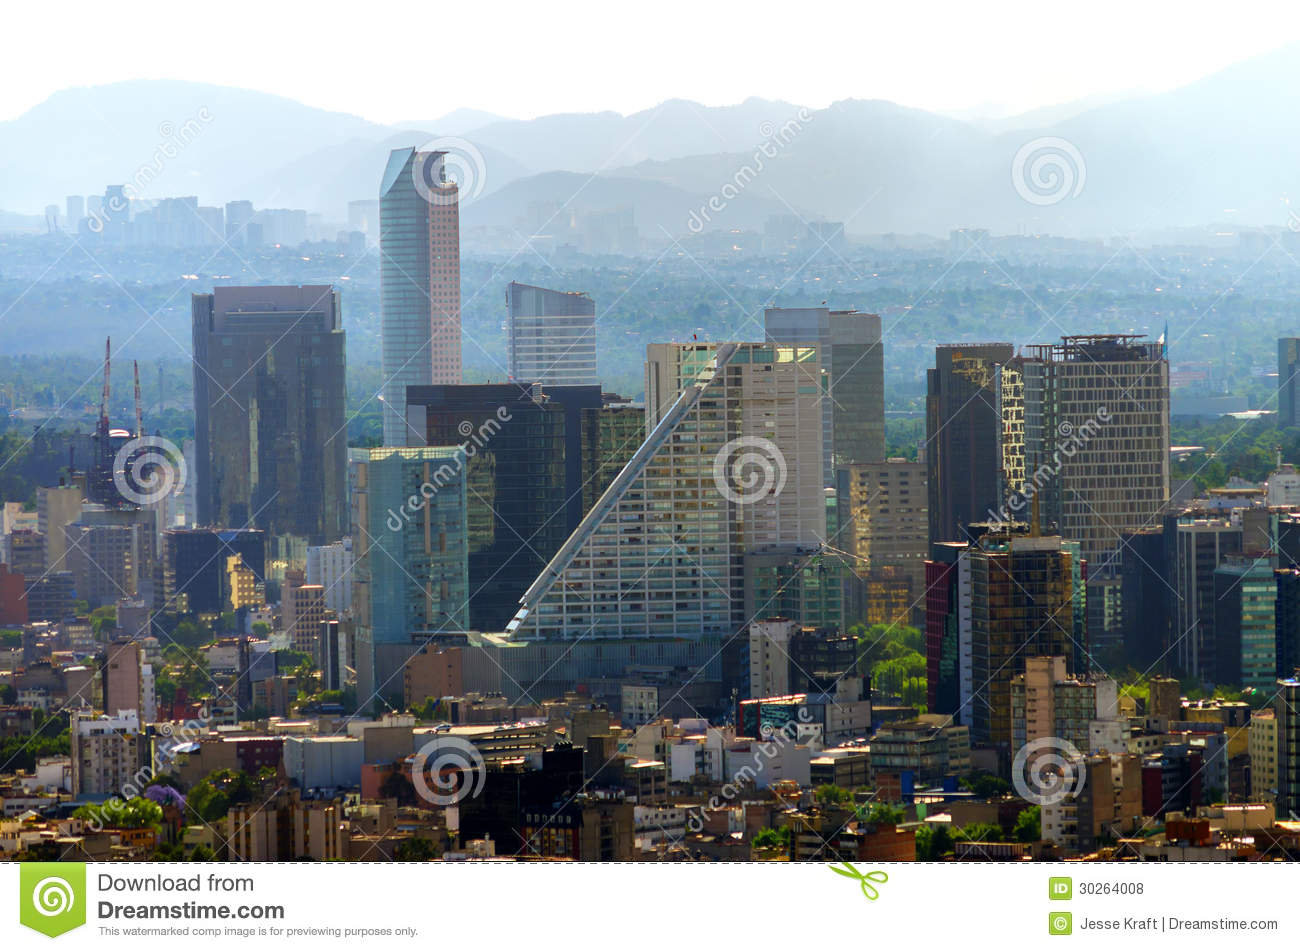 stock and mexico city Find mexico city stock images in hd and millions of other royalty-free stock photos, illustrations, and vectors in the shutterstock collection thousands of new, high-quality pictures added every day.